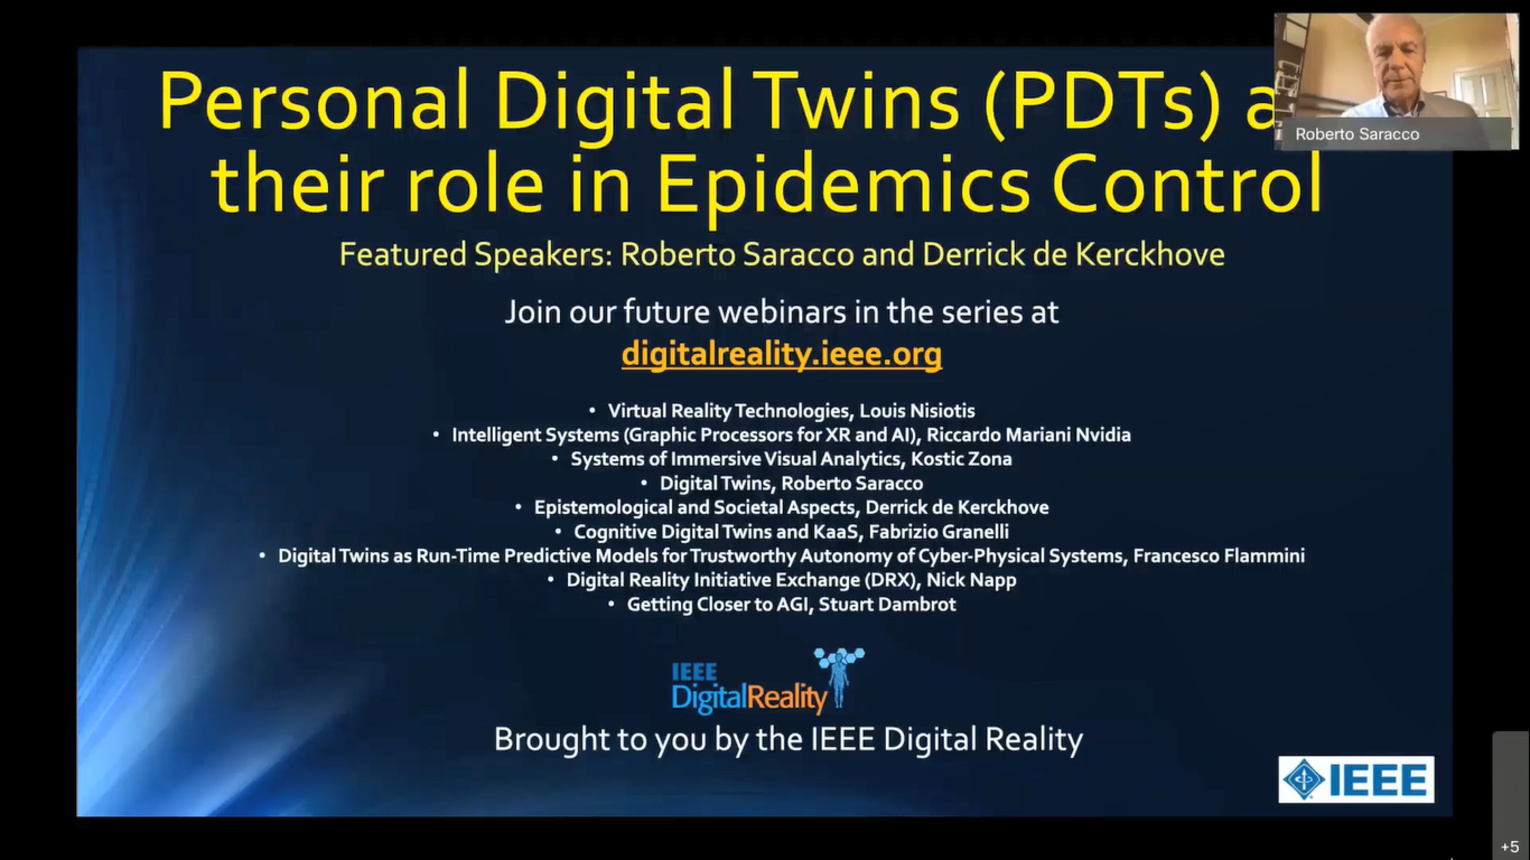 Personal Digital Twins and Their Role in Epidemics Control